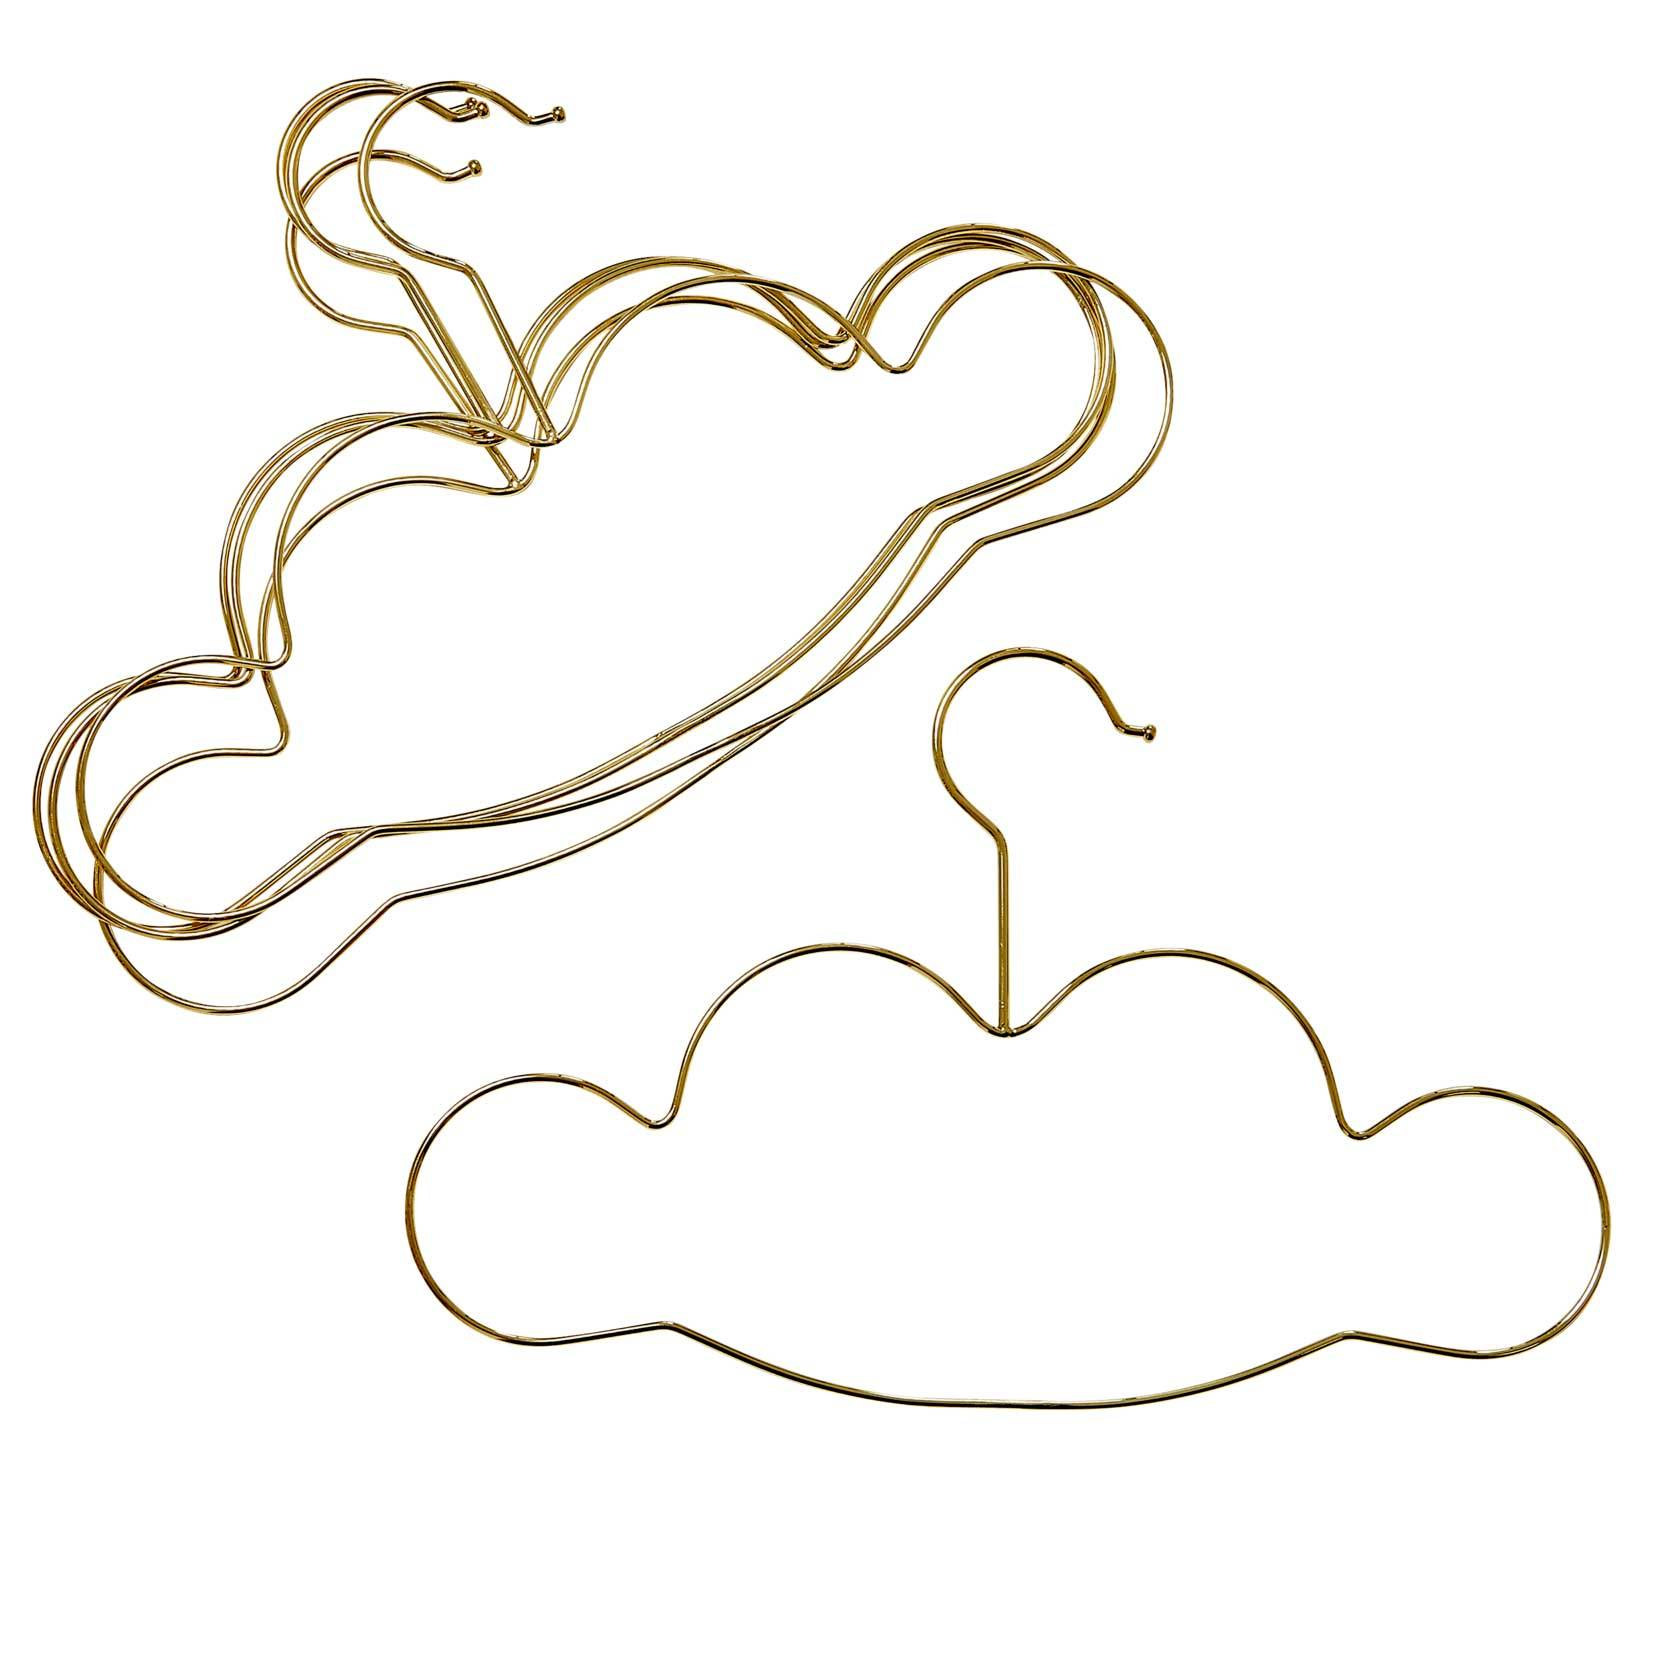 RICE Cloud Hangers for Kids 5-pack, Gold